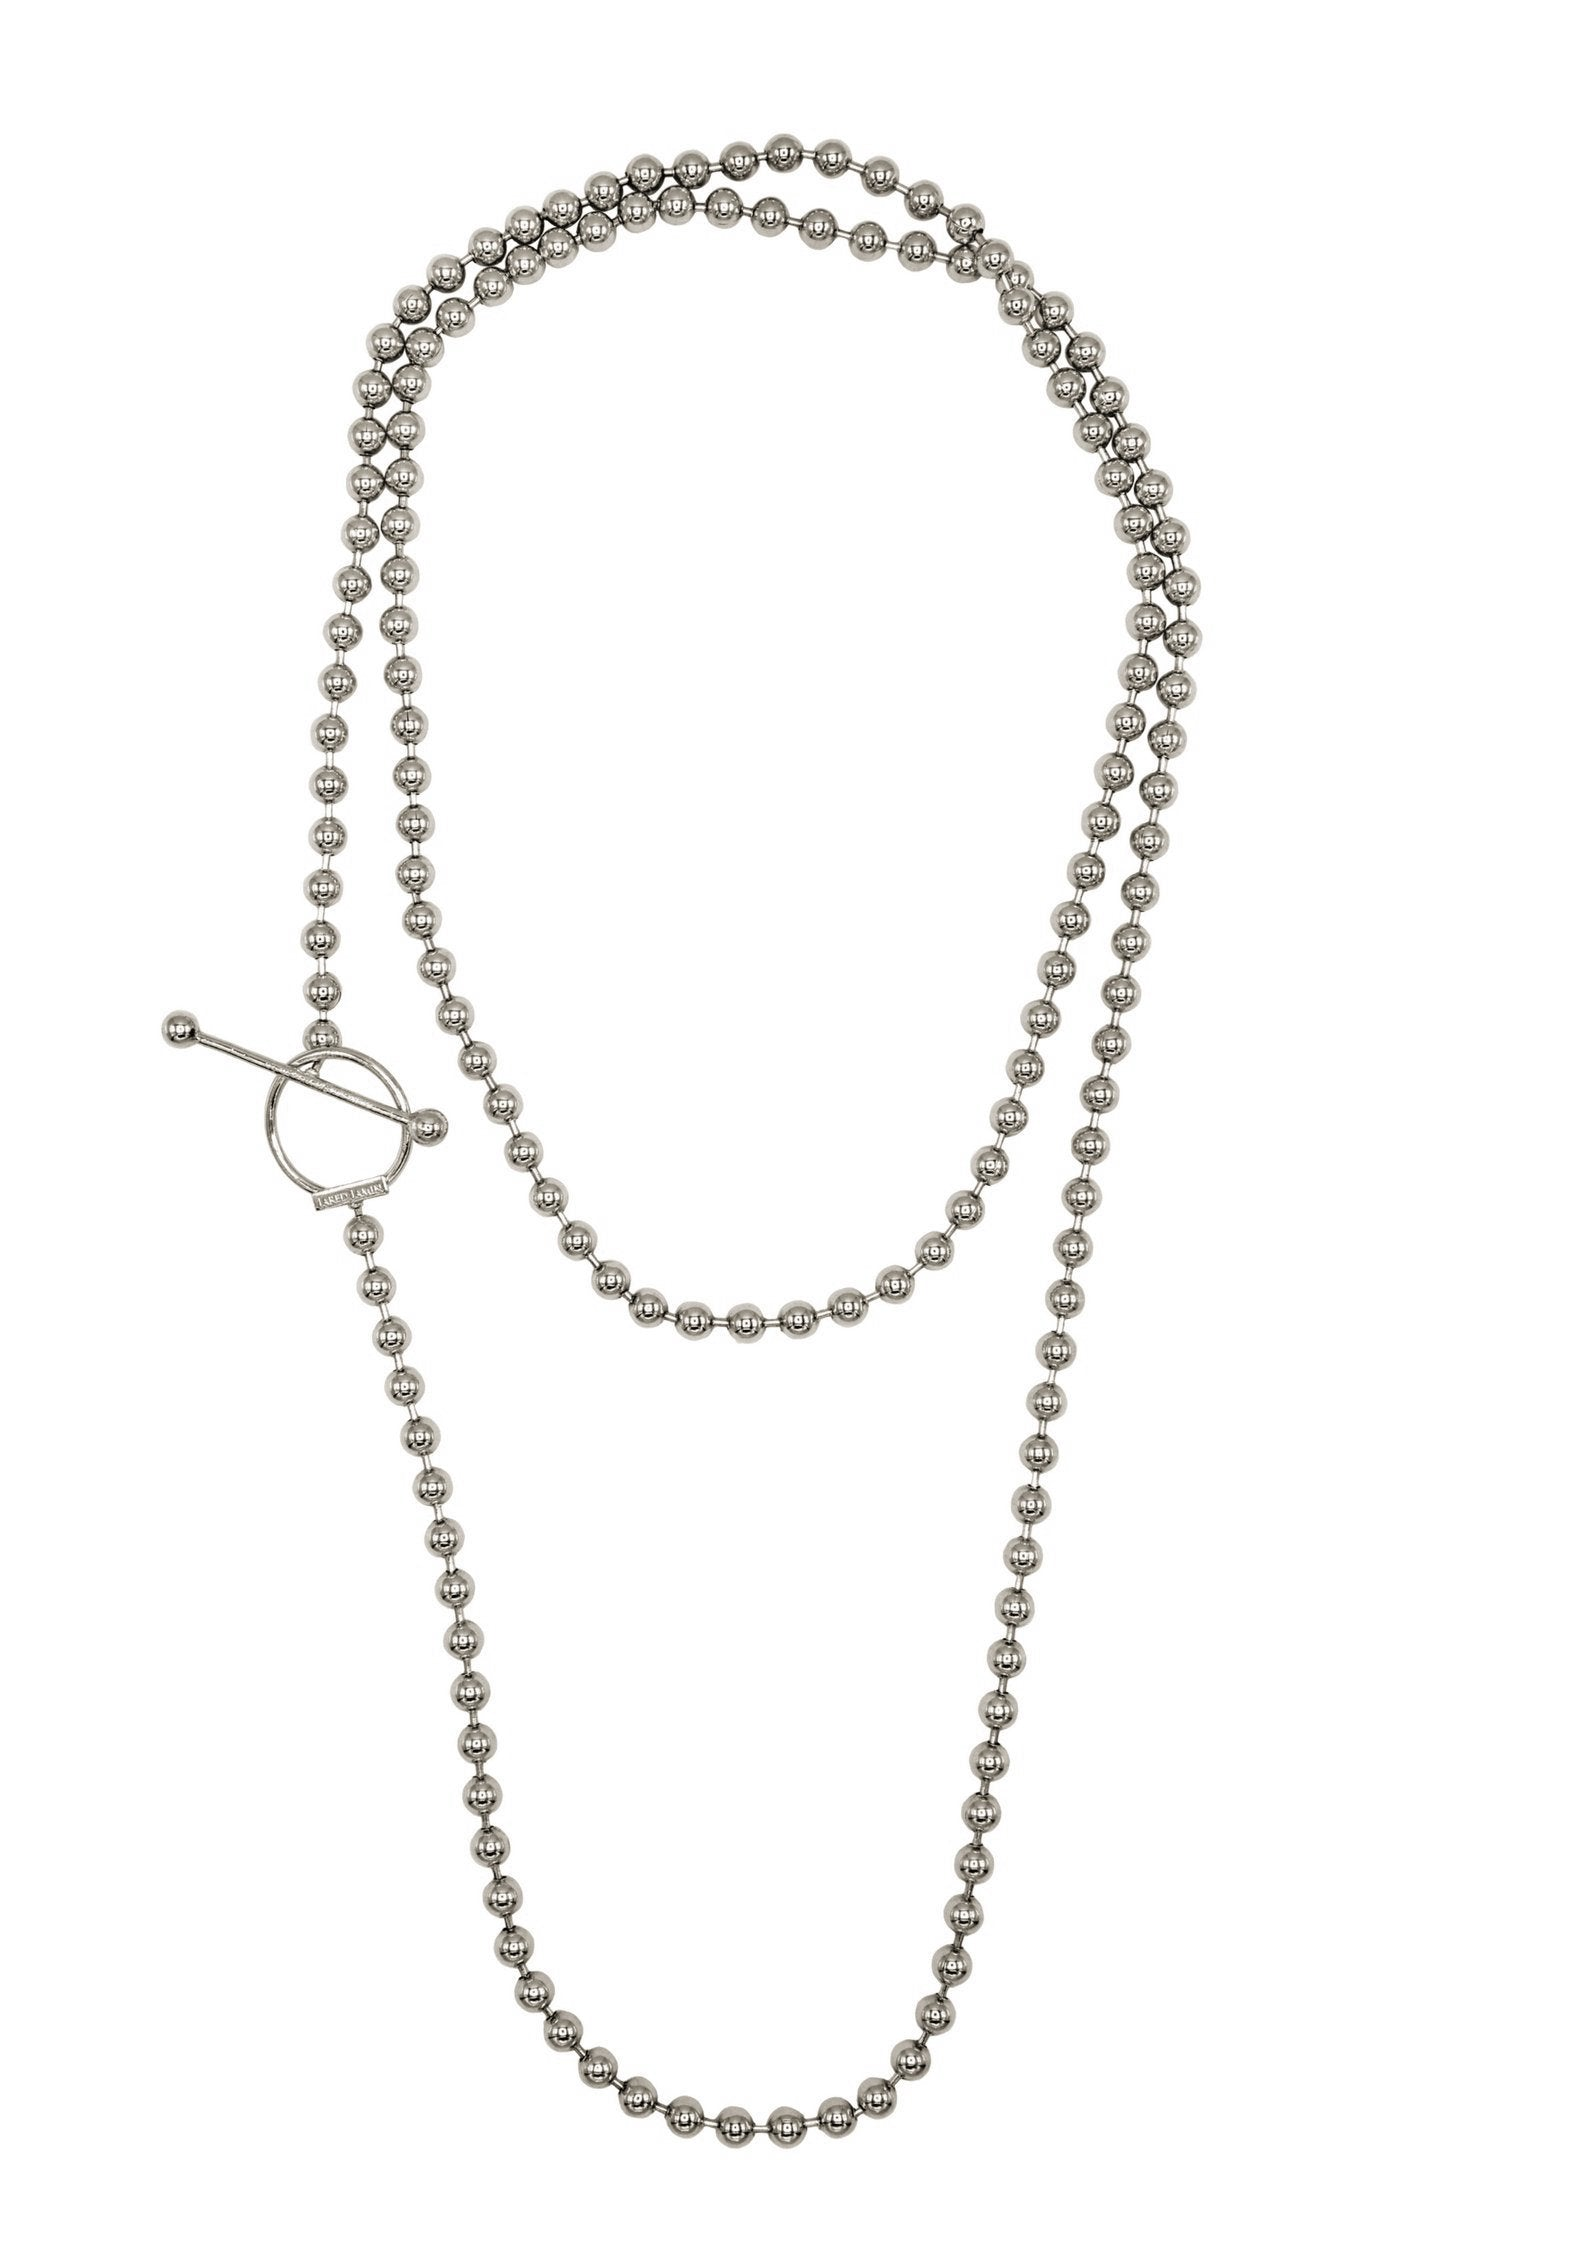 Silver Constellation Orbita Necklace-Necklaces-JAREDJAMIN Jewelry Online-JARED JAMIN